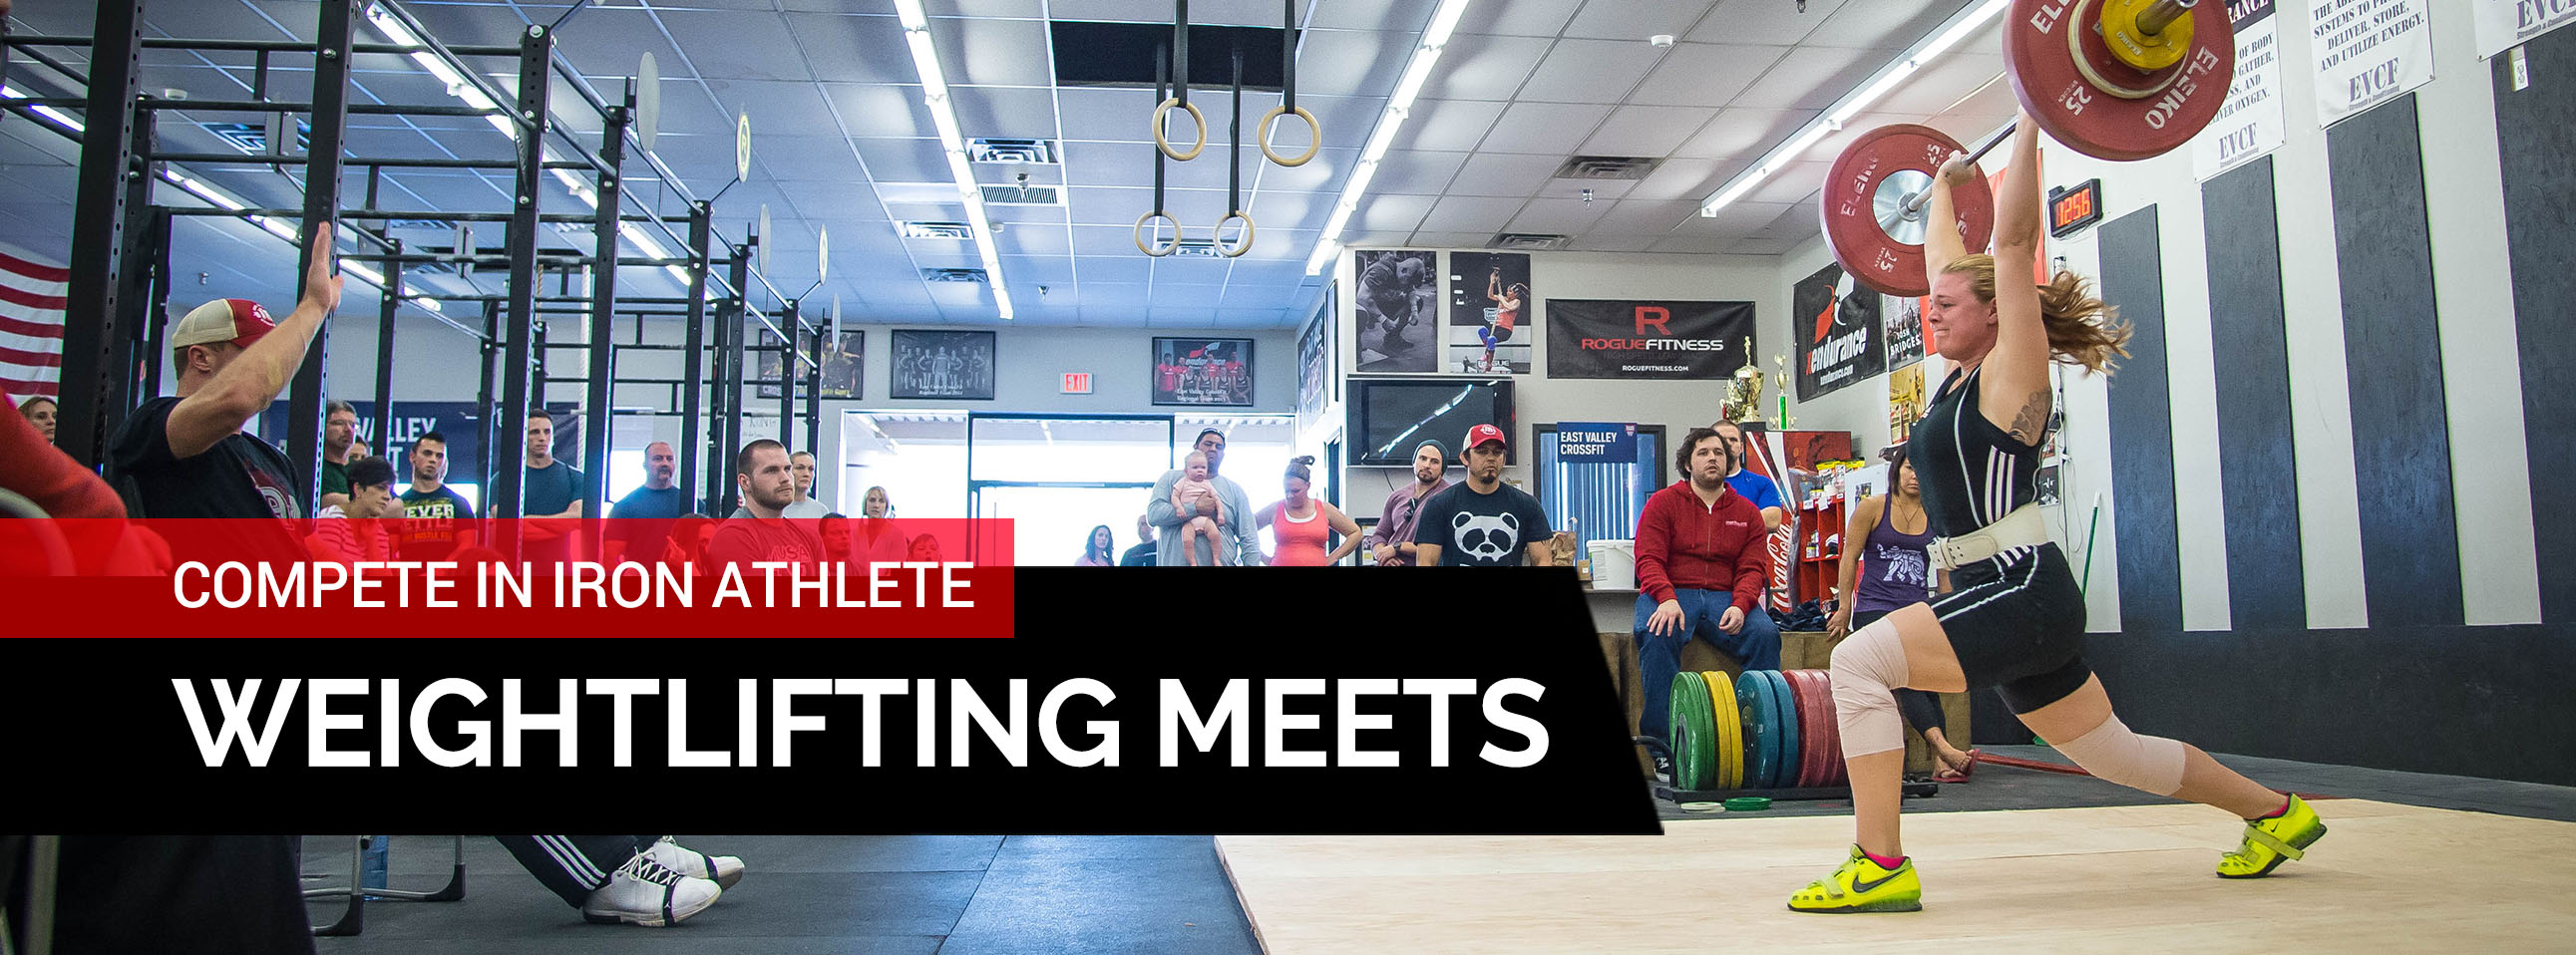 Iron Athlete Weightlifting Meets